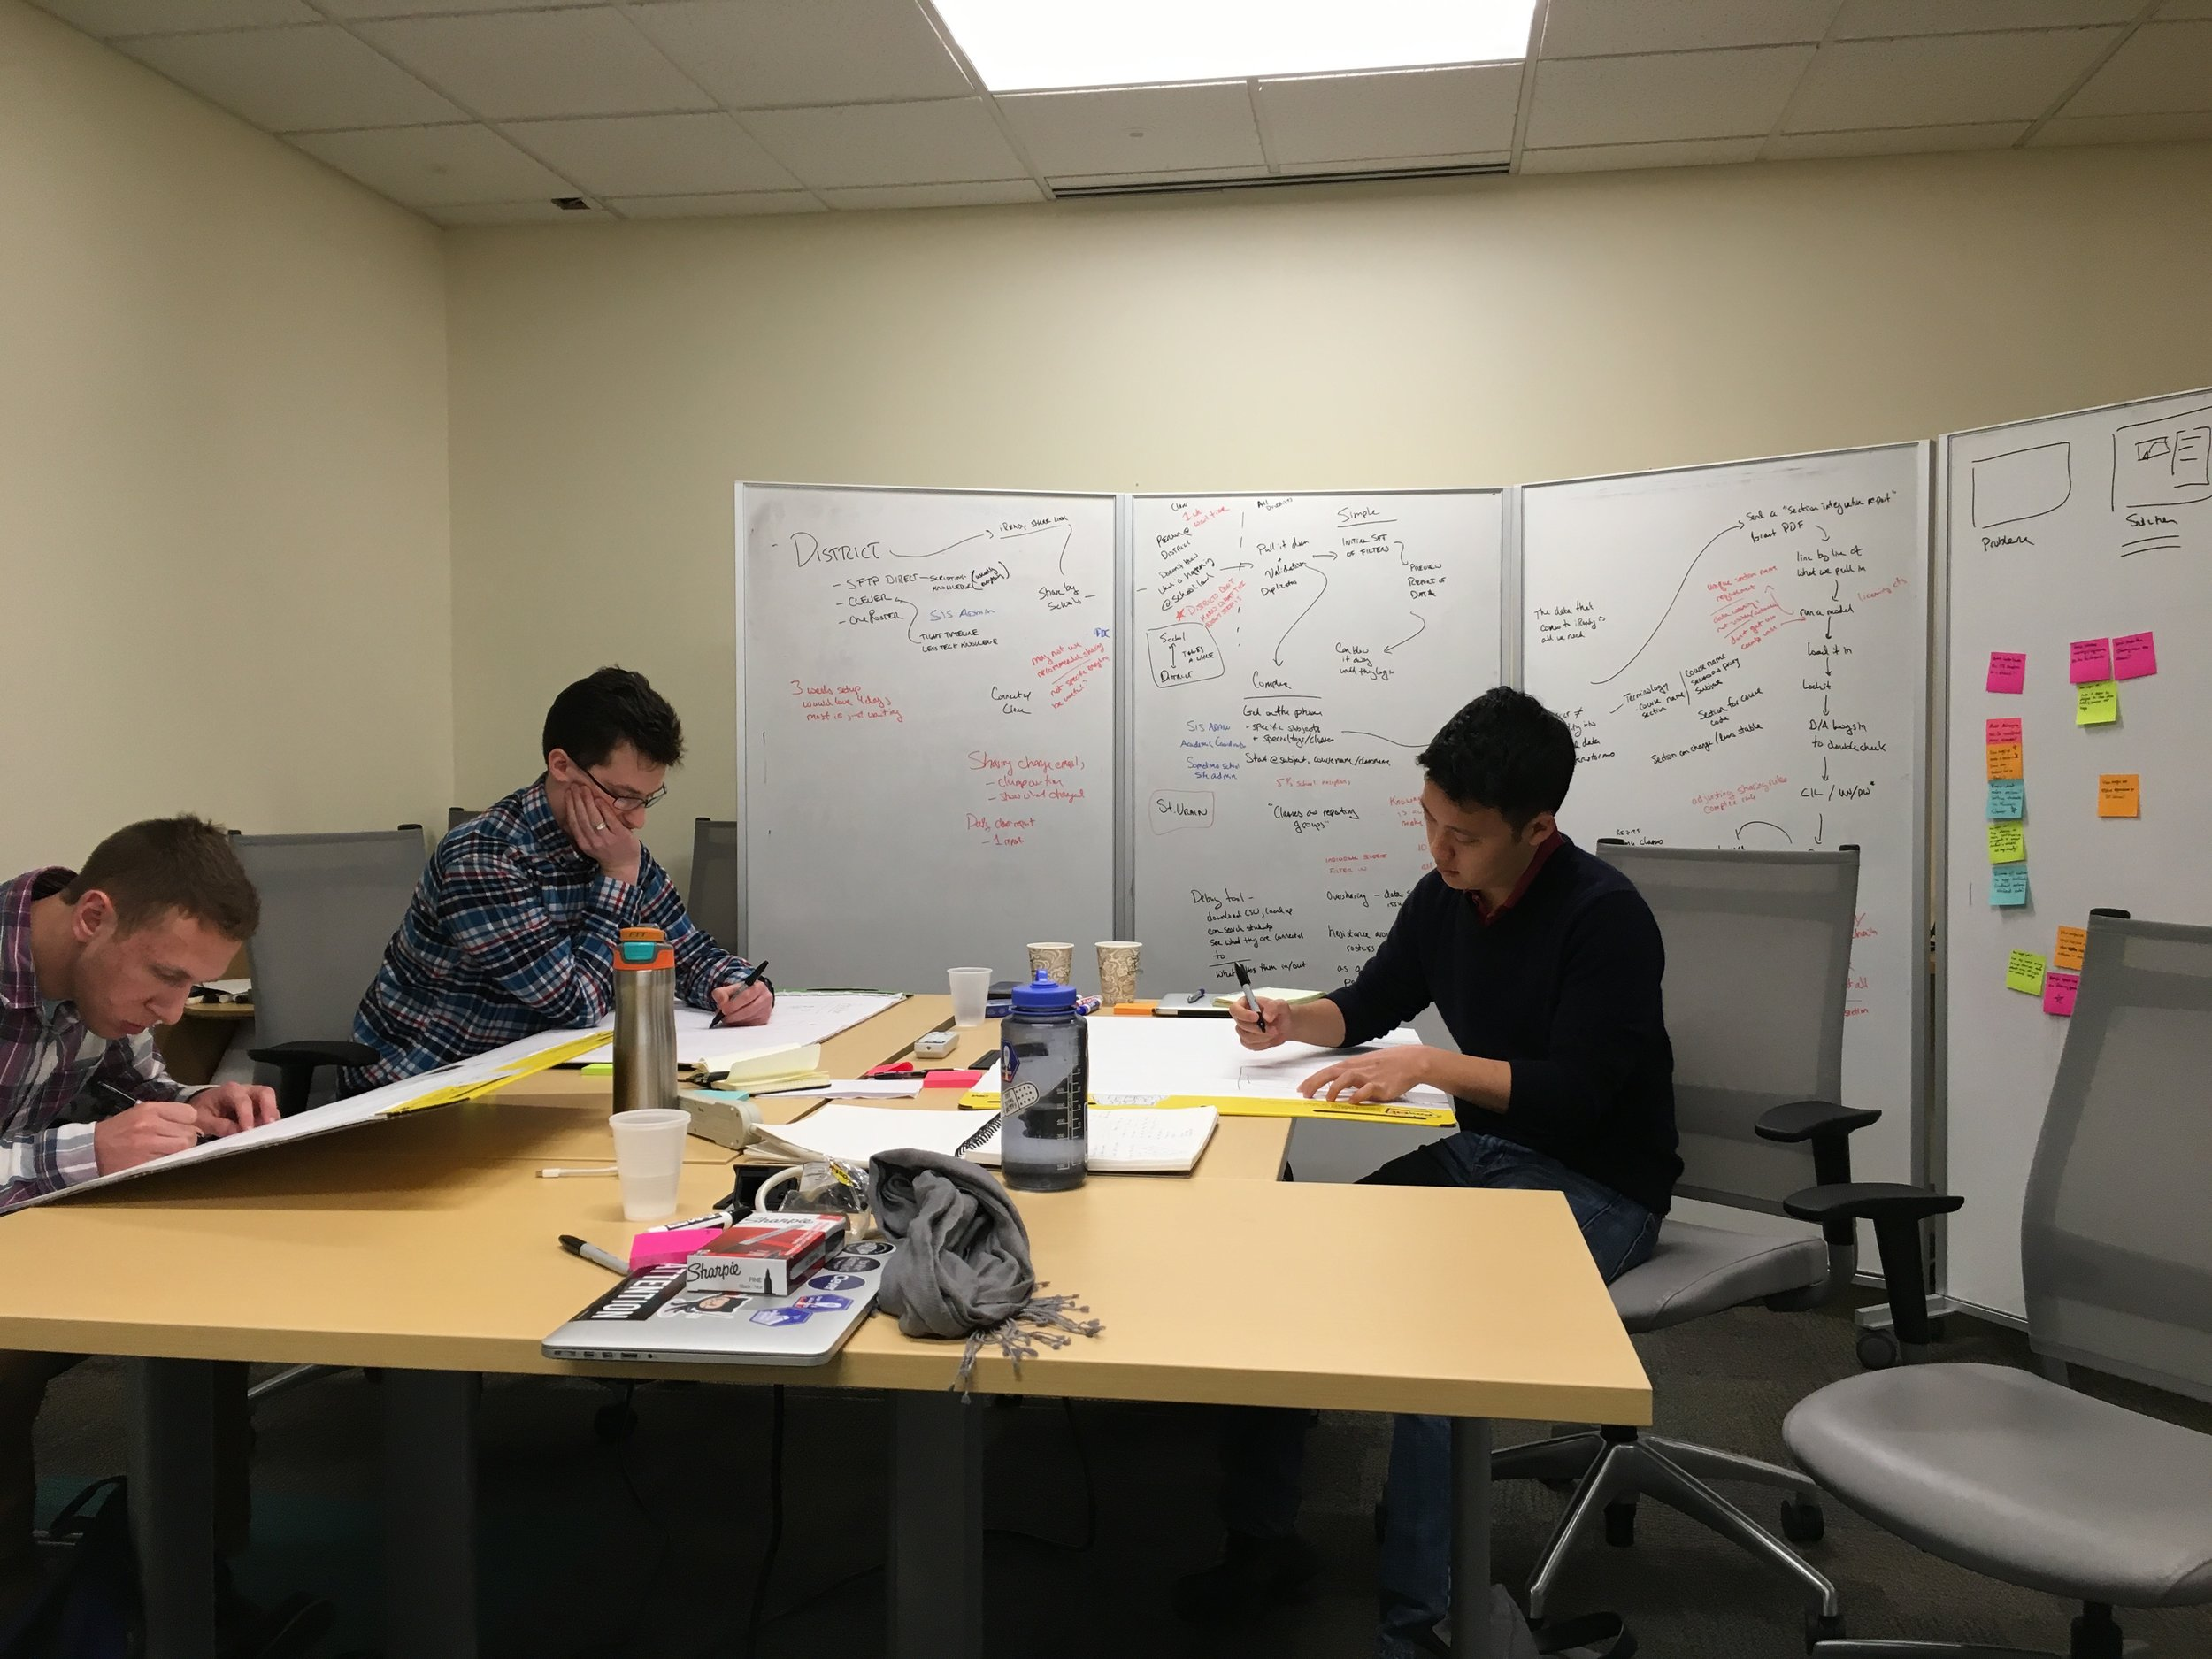 research - I gather, synthesize, and understand the needs and context of users to highlight opportunities and issues with new and existing services and products. My methods include user interviews, process mapping, diary studies, shadowing, and co-design.